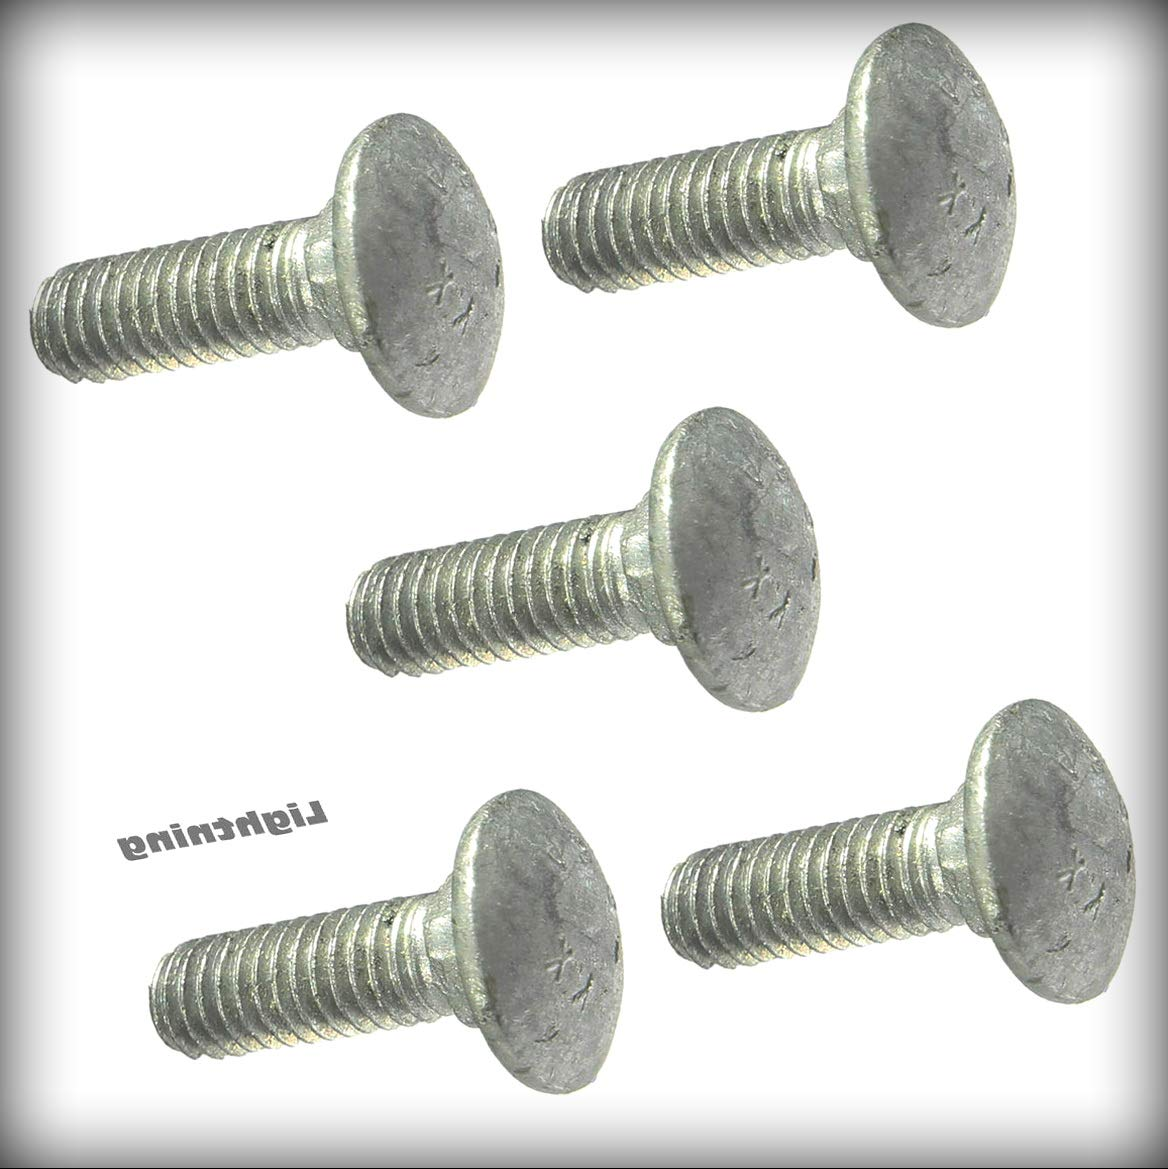 New All stores are sold Pack of 100 Pcs 3 8-16 NEW Carriage Bolt x inch Machine 6